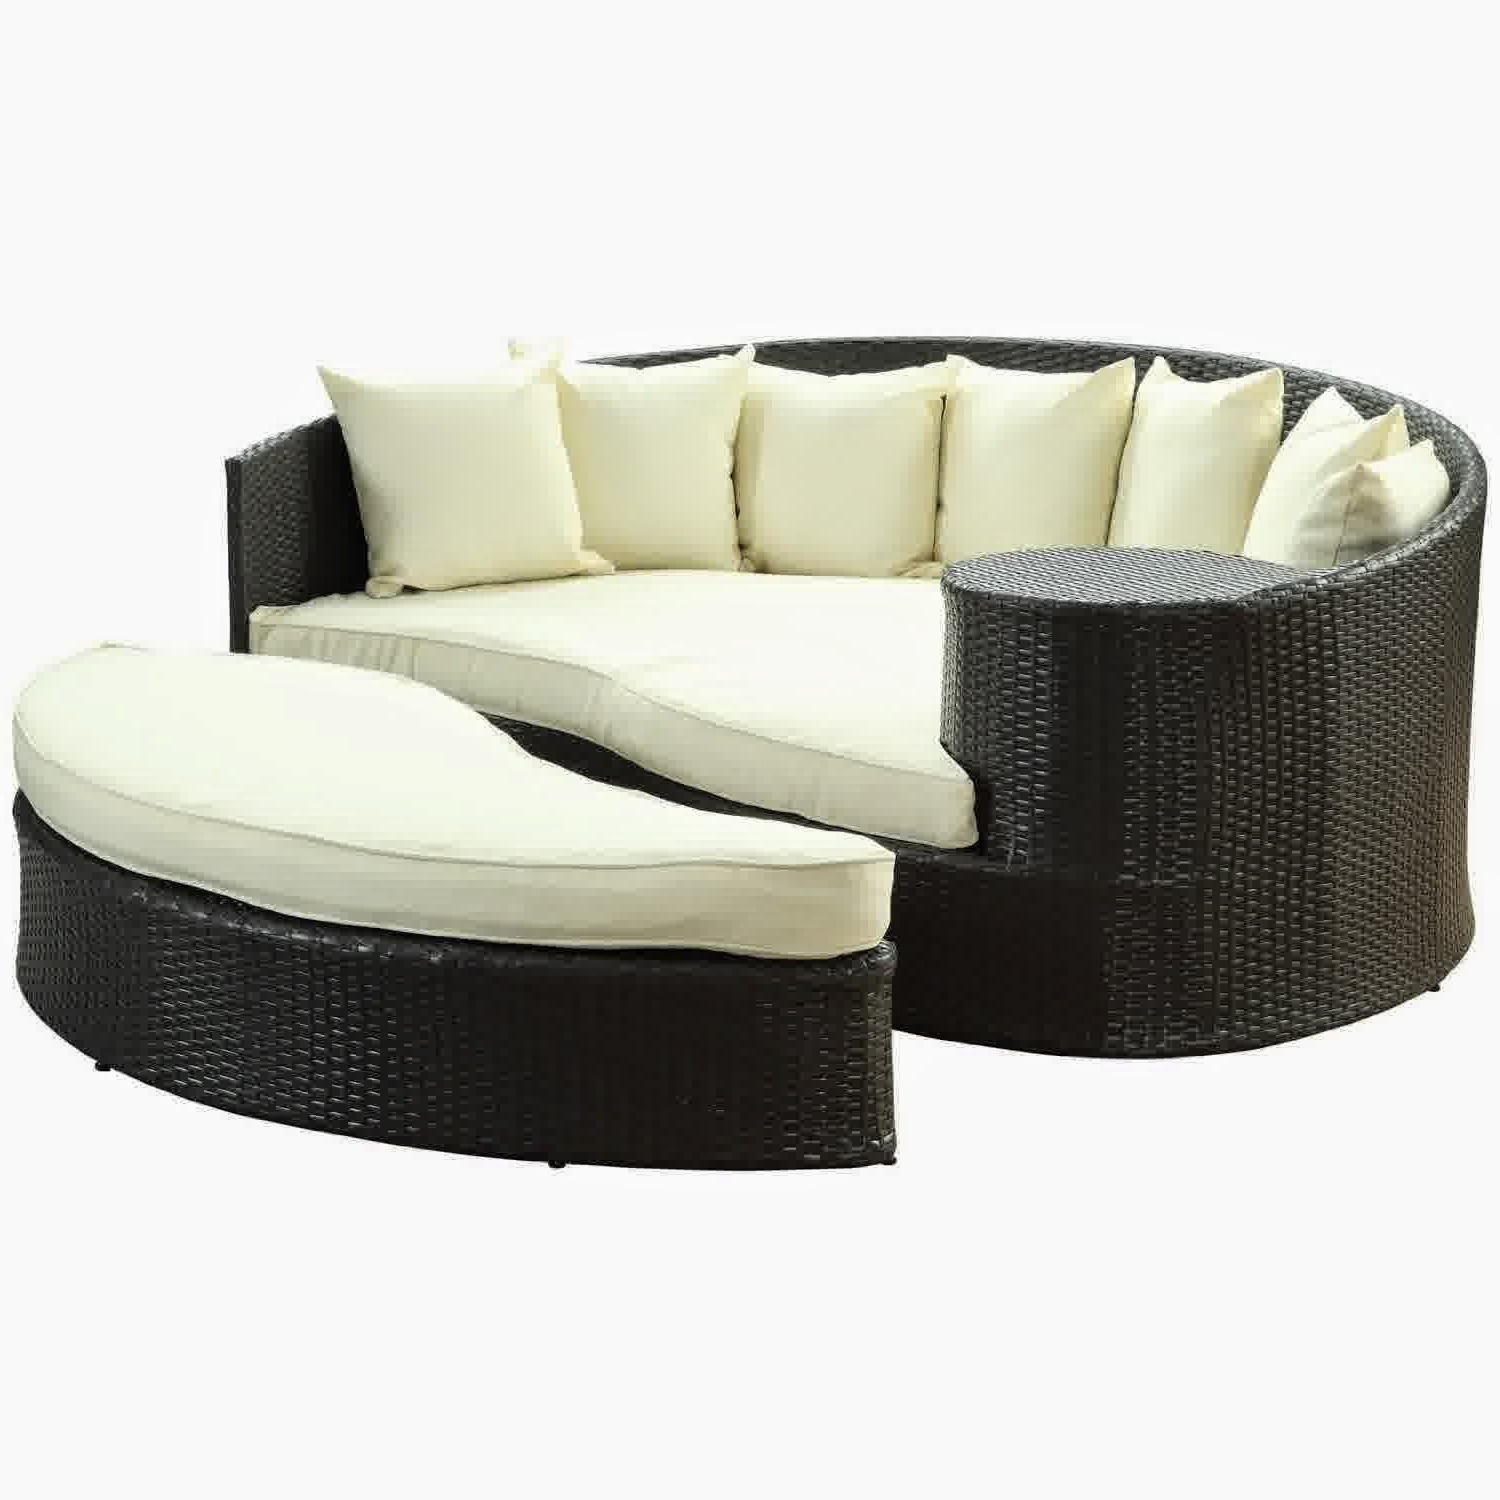 Greening Outdoor Daybeds With Ottoman & Cushions Inside Trendy Lexmod Taiji Outdoor Wicker Patio Daybed With Ottoman In (View 5 of 20)